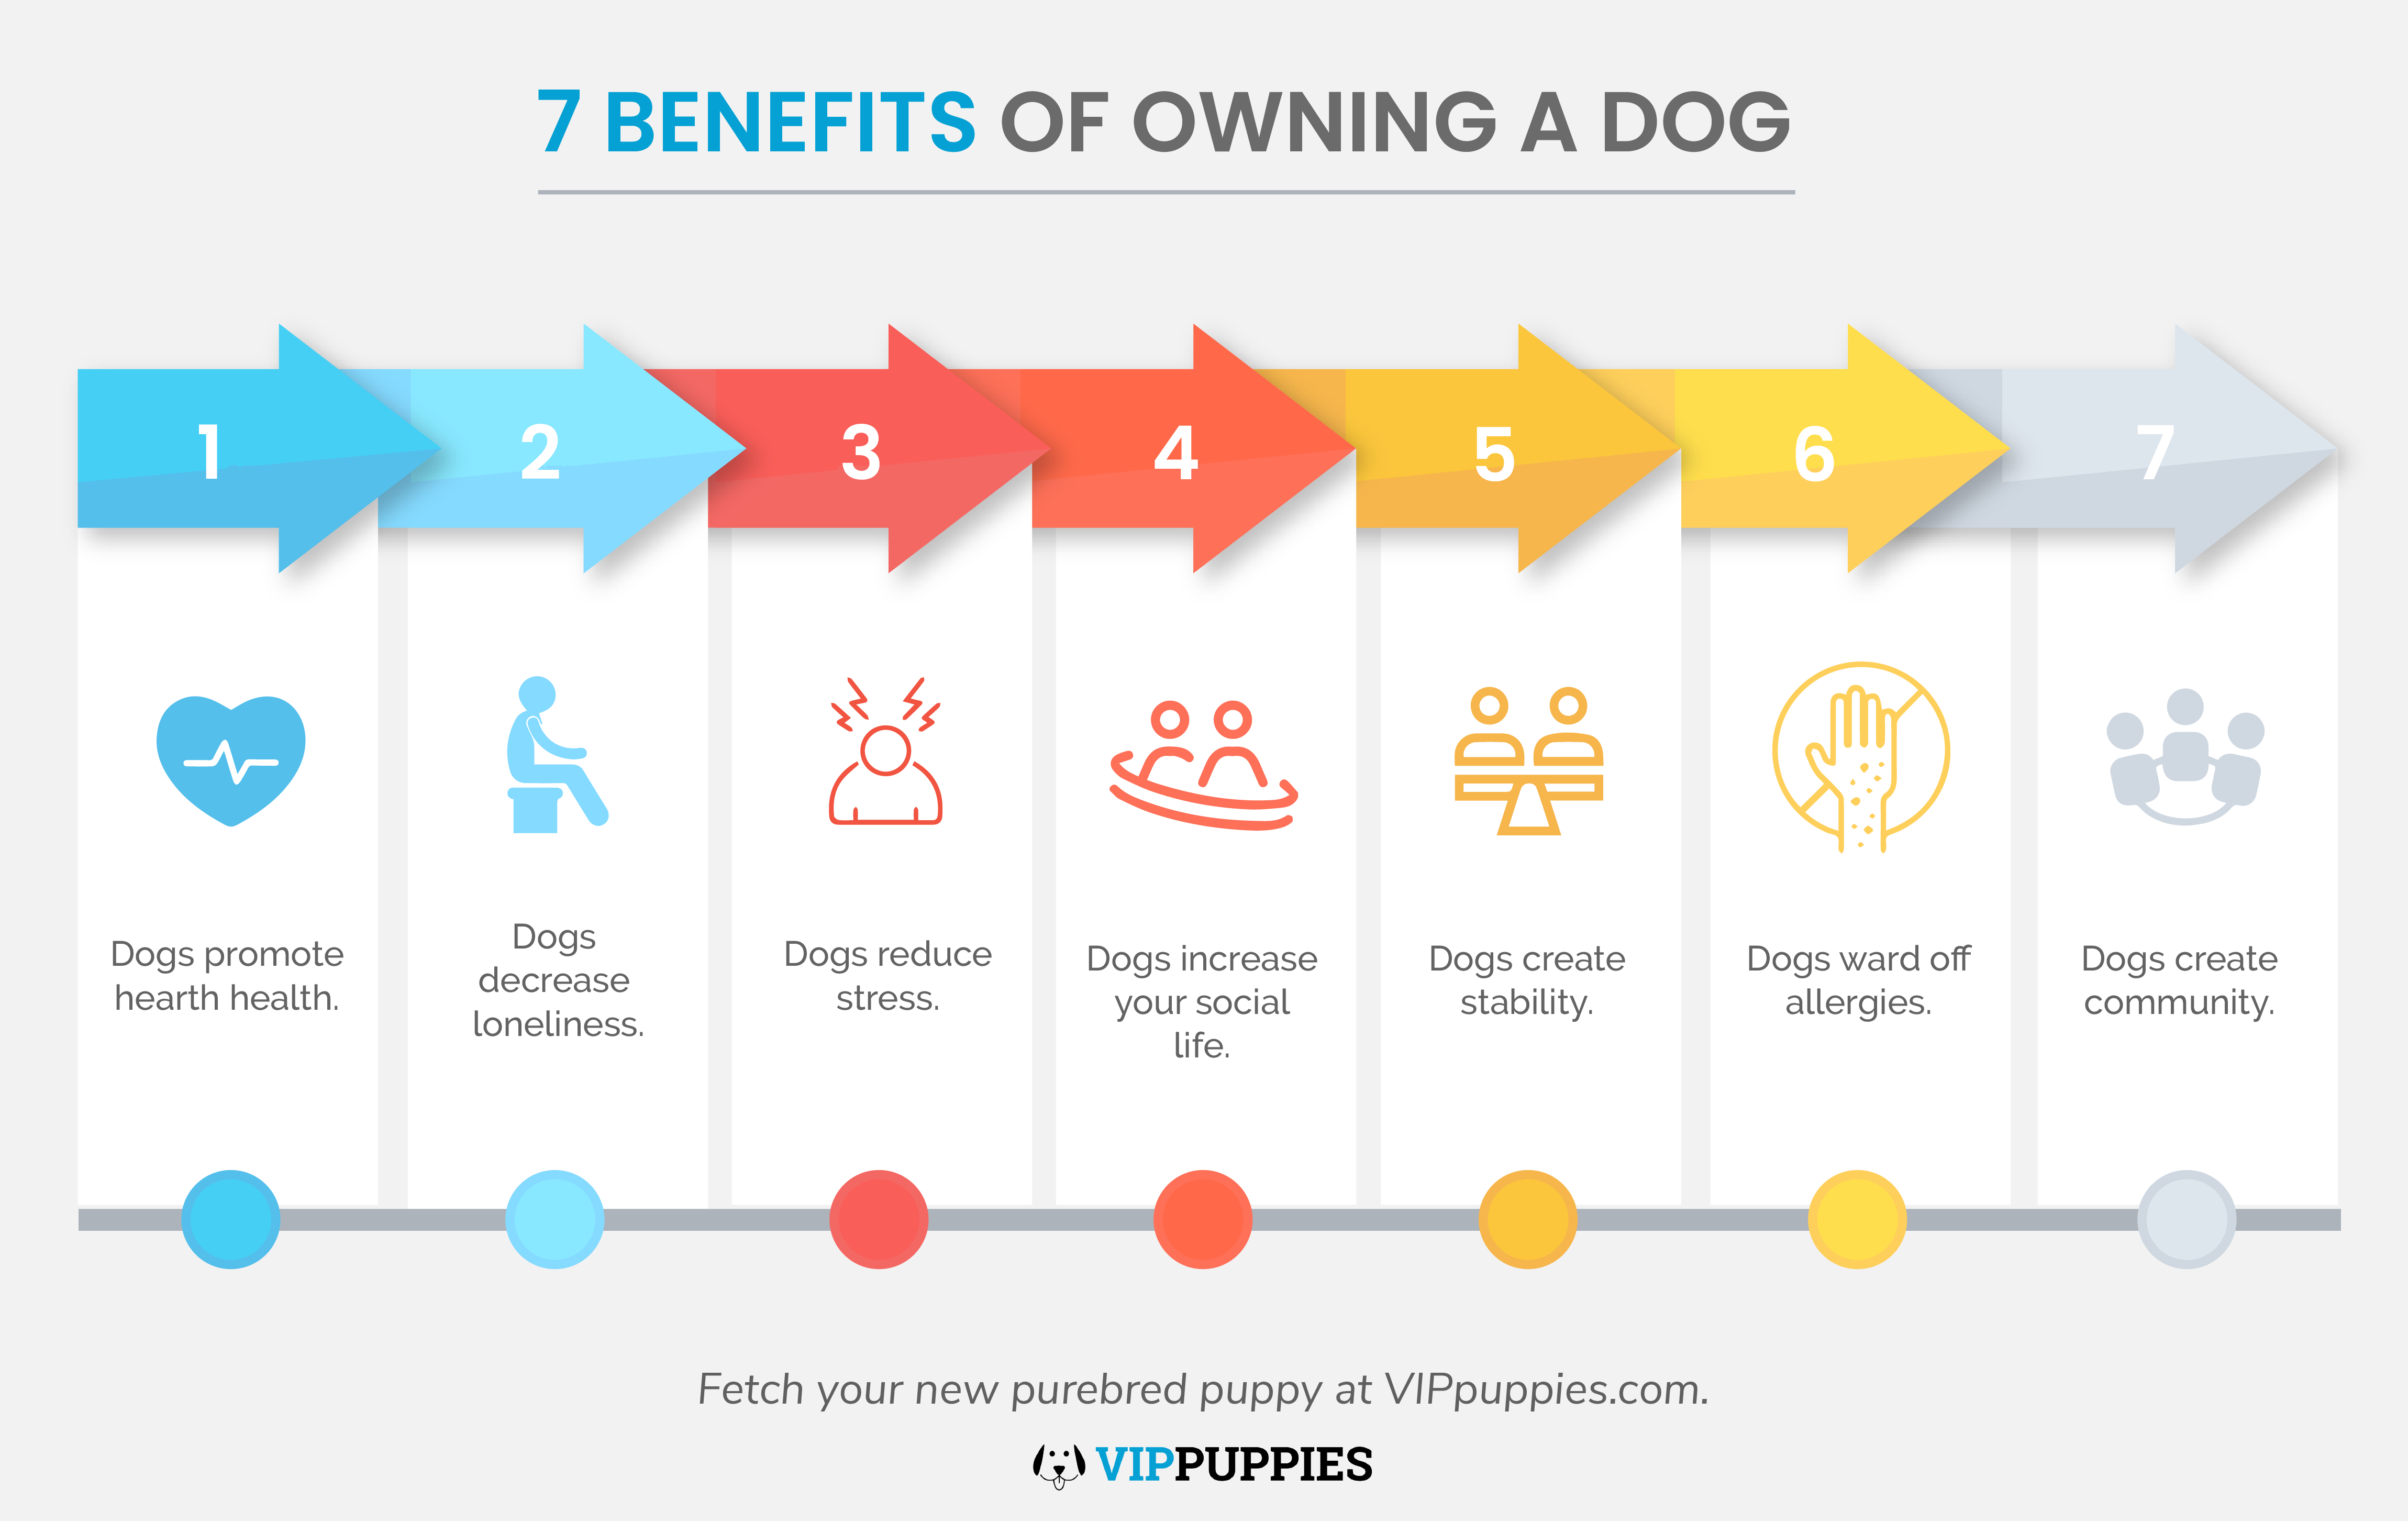 7 Benefits Of Owning A Dog Infographic